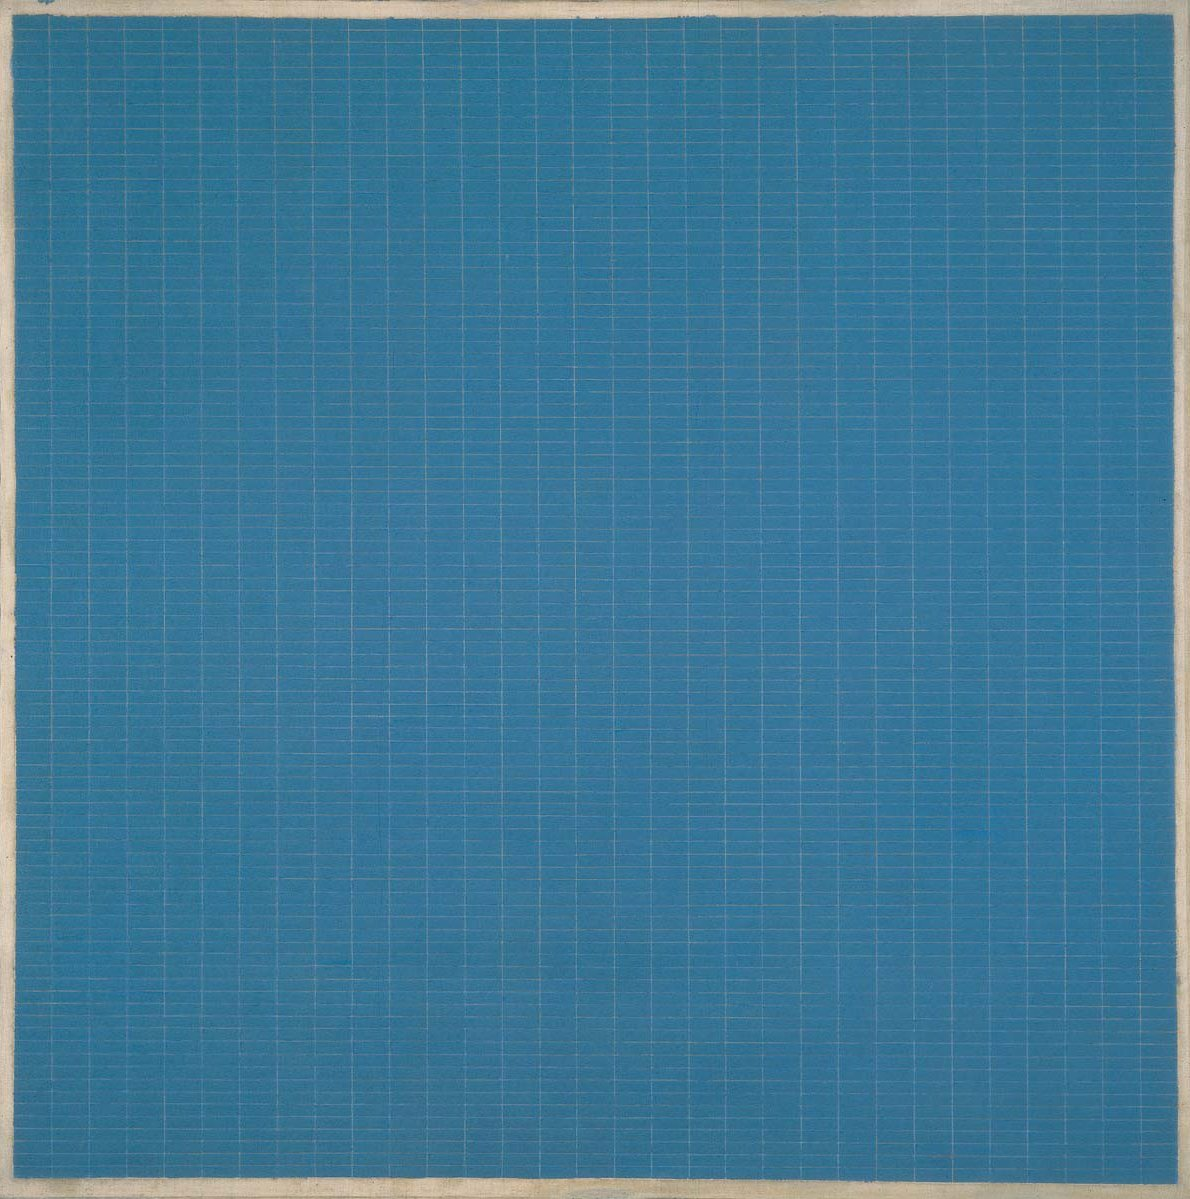 Square blue field covered with a grid of thin white lines